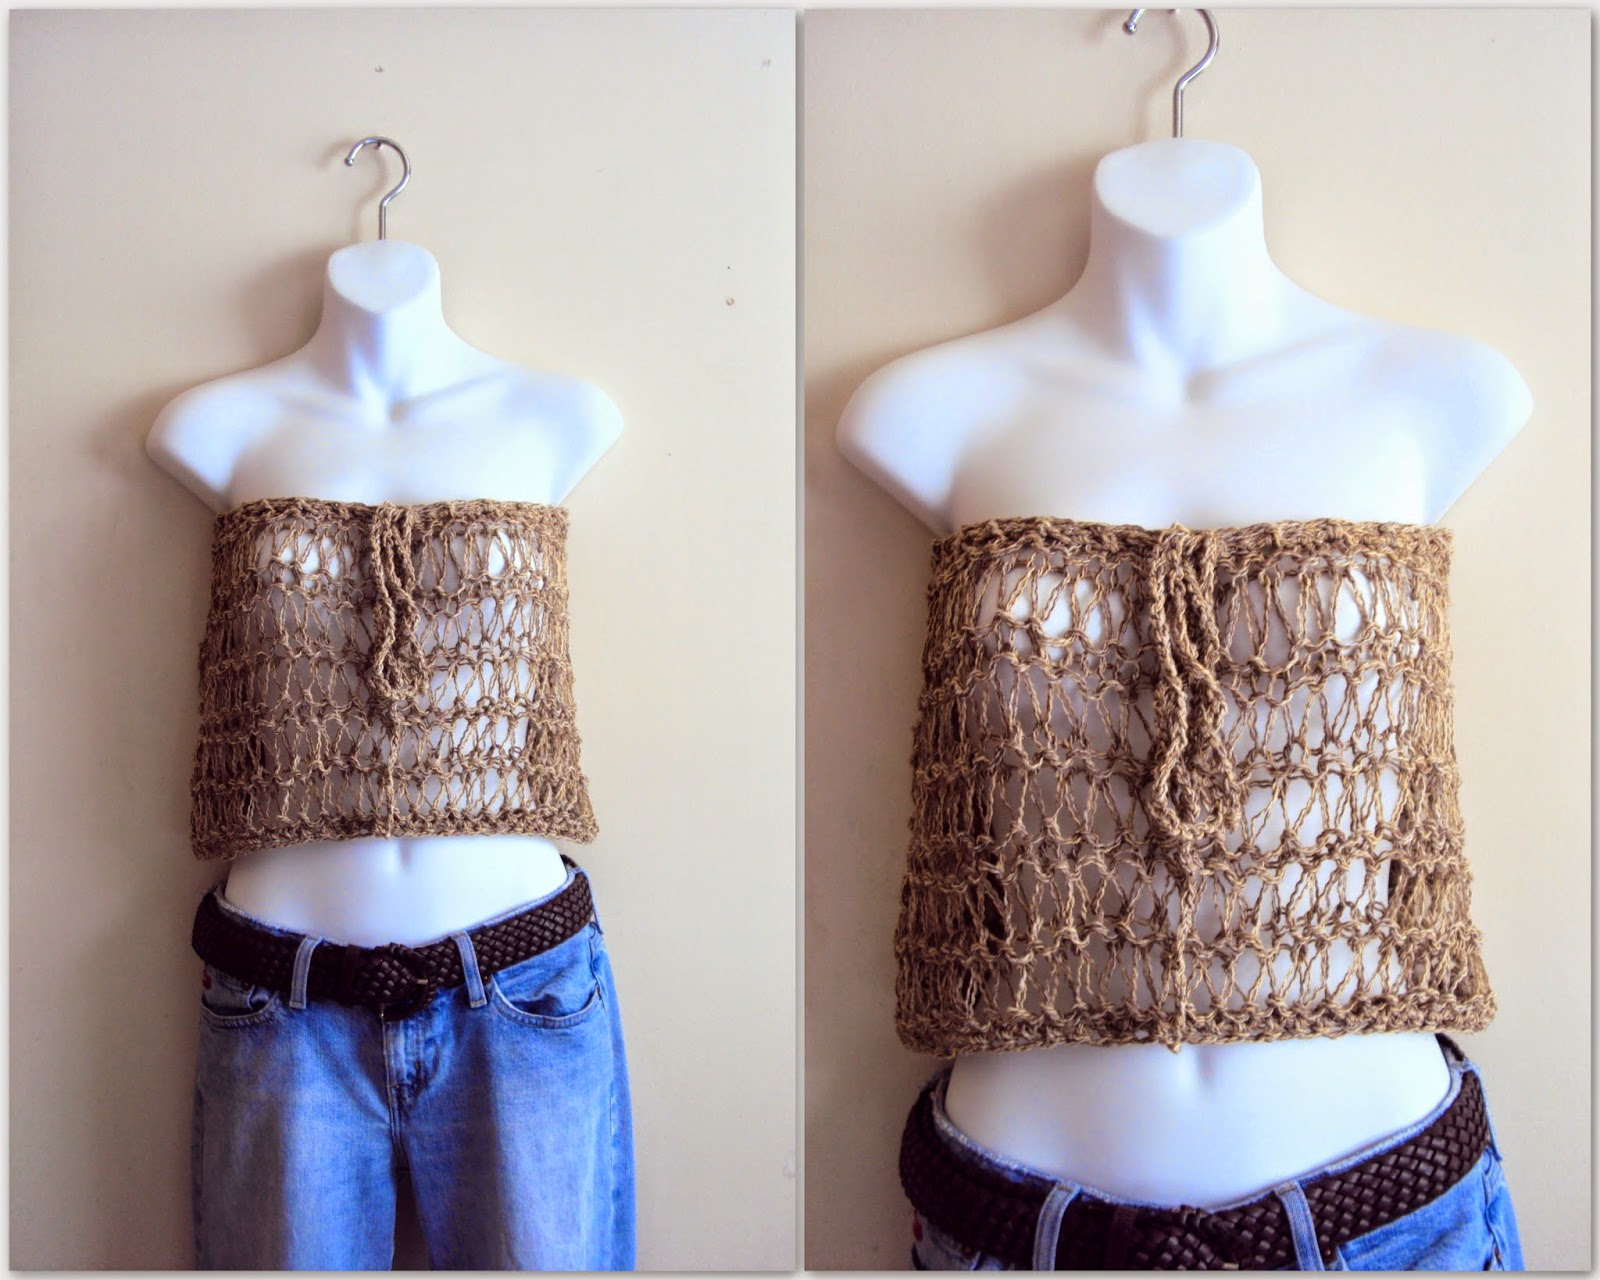 https://www.etsy.com/listing/230617648/crochet-mesh-top-mini-skirt-swimsuit?ref=shop_home_active_7